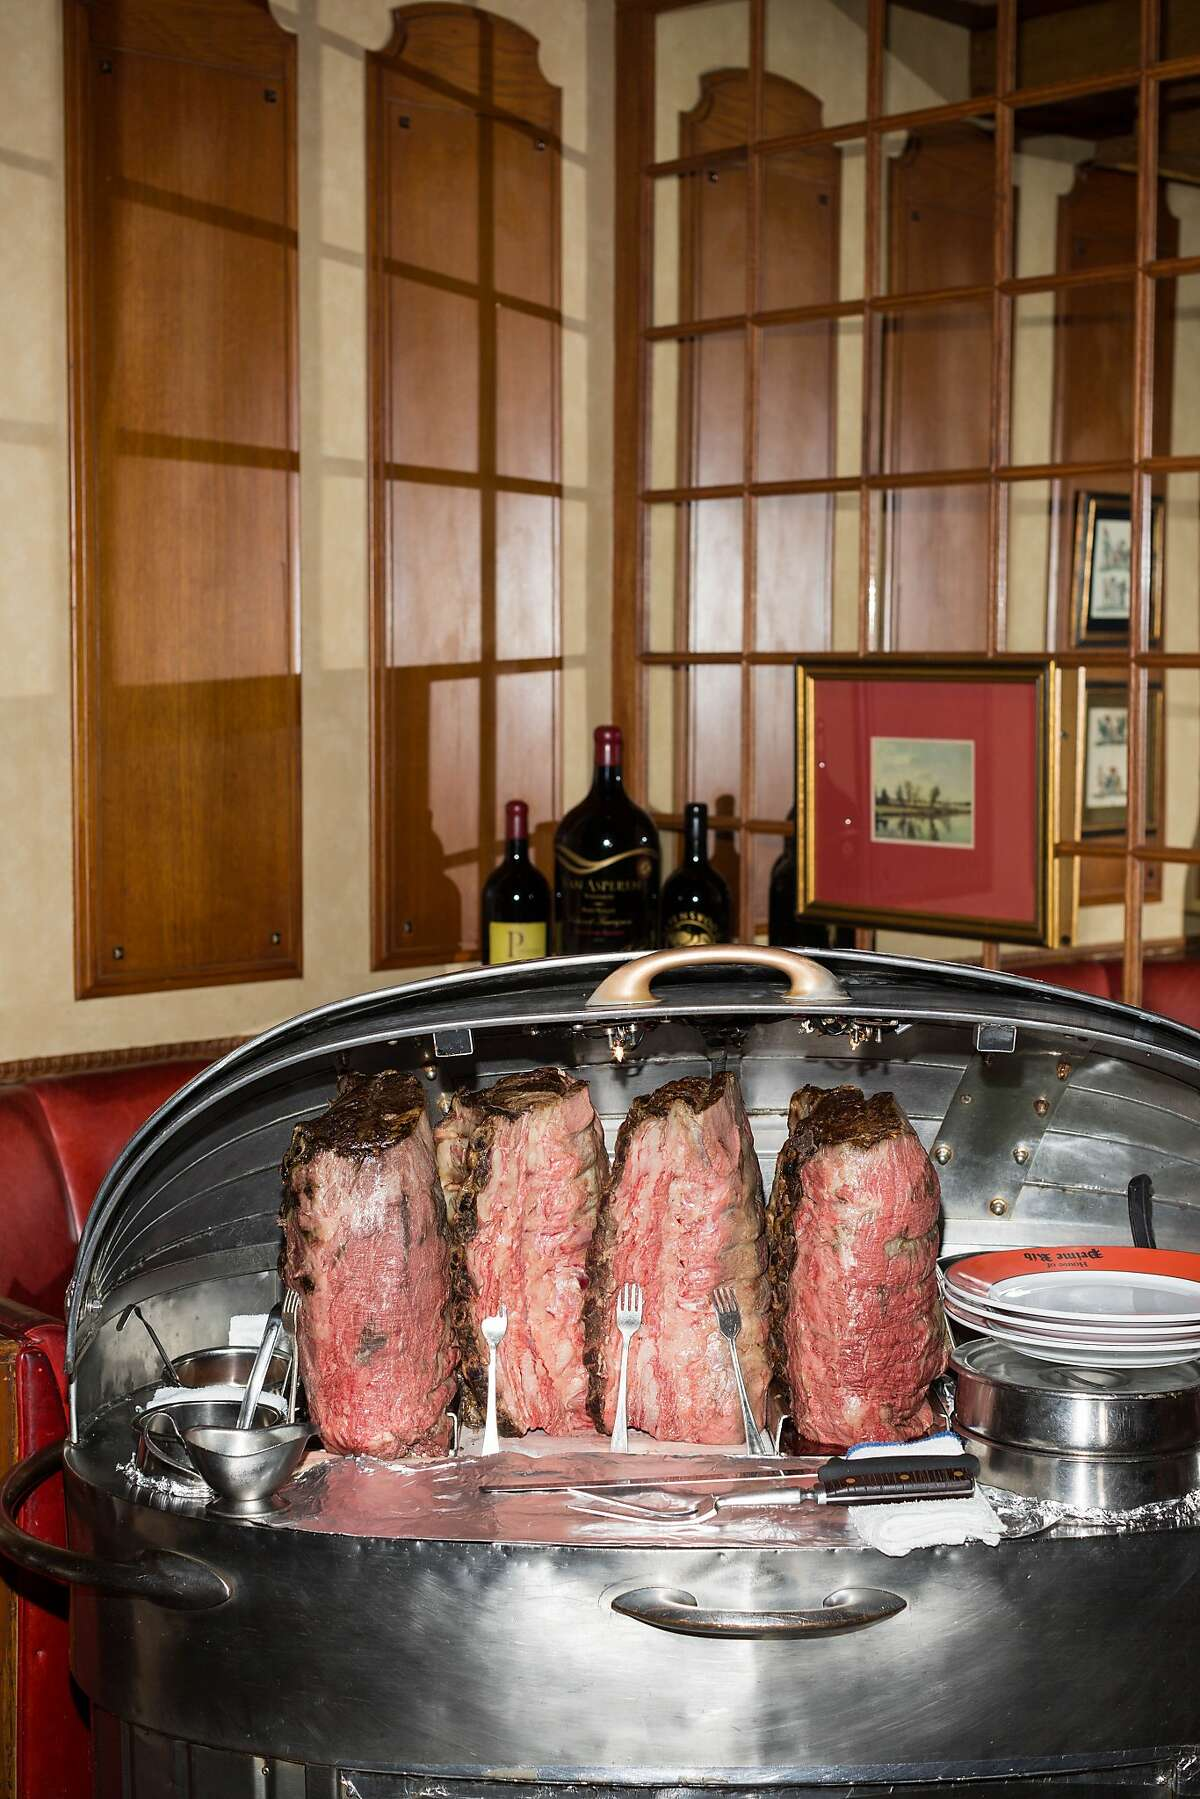 Prime Rib is served on metal carts wheeled through the restaurant and sliced table side at House of Prime Rib in San Francisco, Calif., Monday, November 17, 2014.